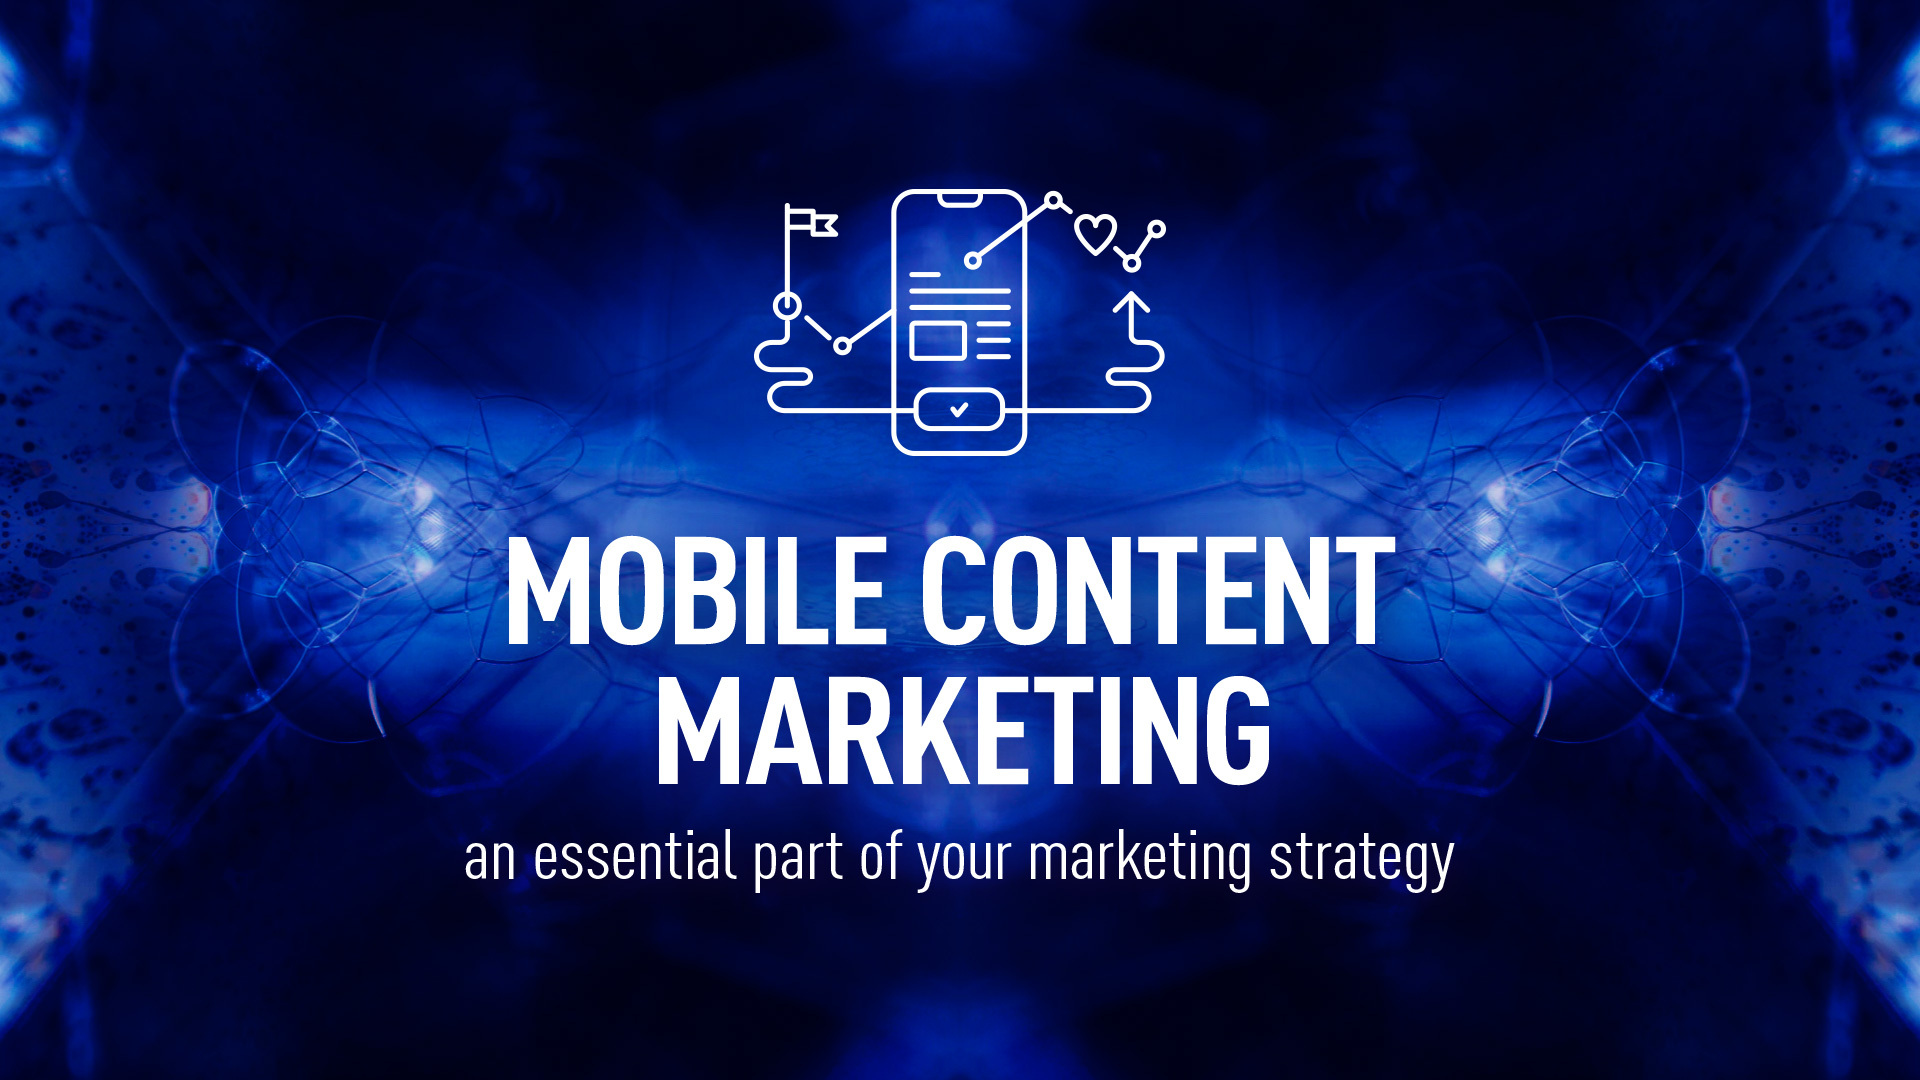 Mobile content marketing – an essential part of your marketing strategy